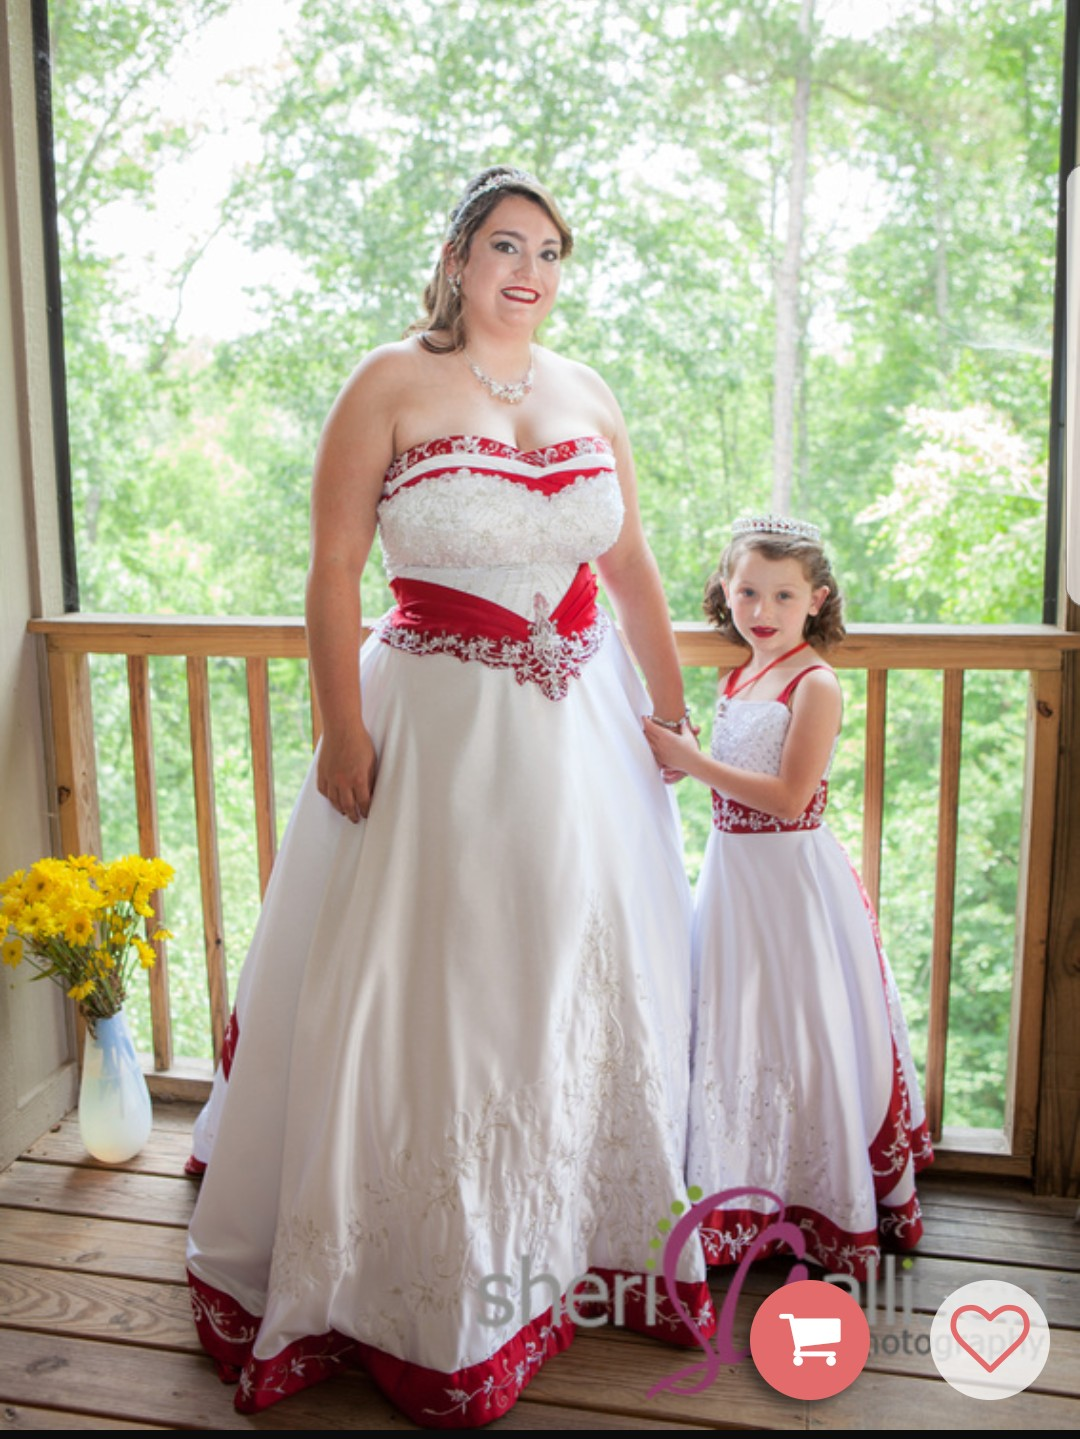 Flower girl dresses made to match the brides wedding dress for Matching wedding and flower girl dresses